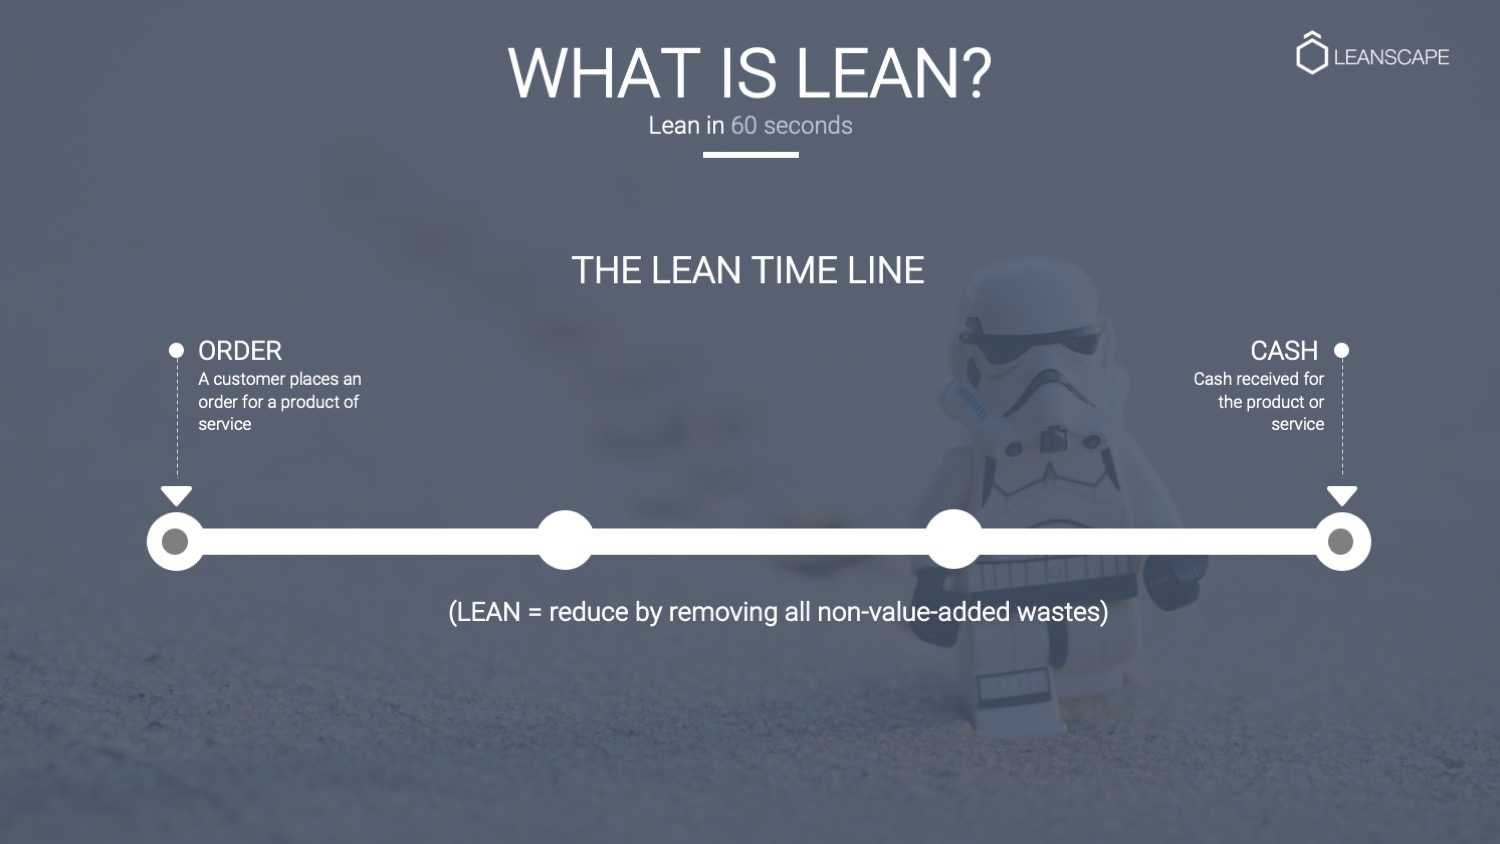 Lean in 60 seconds